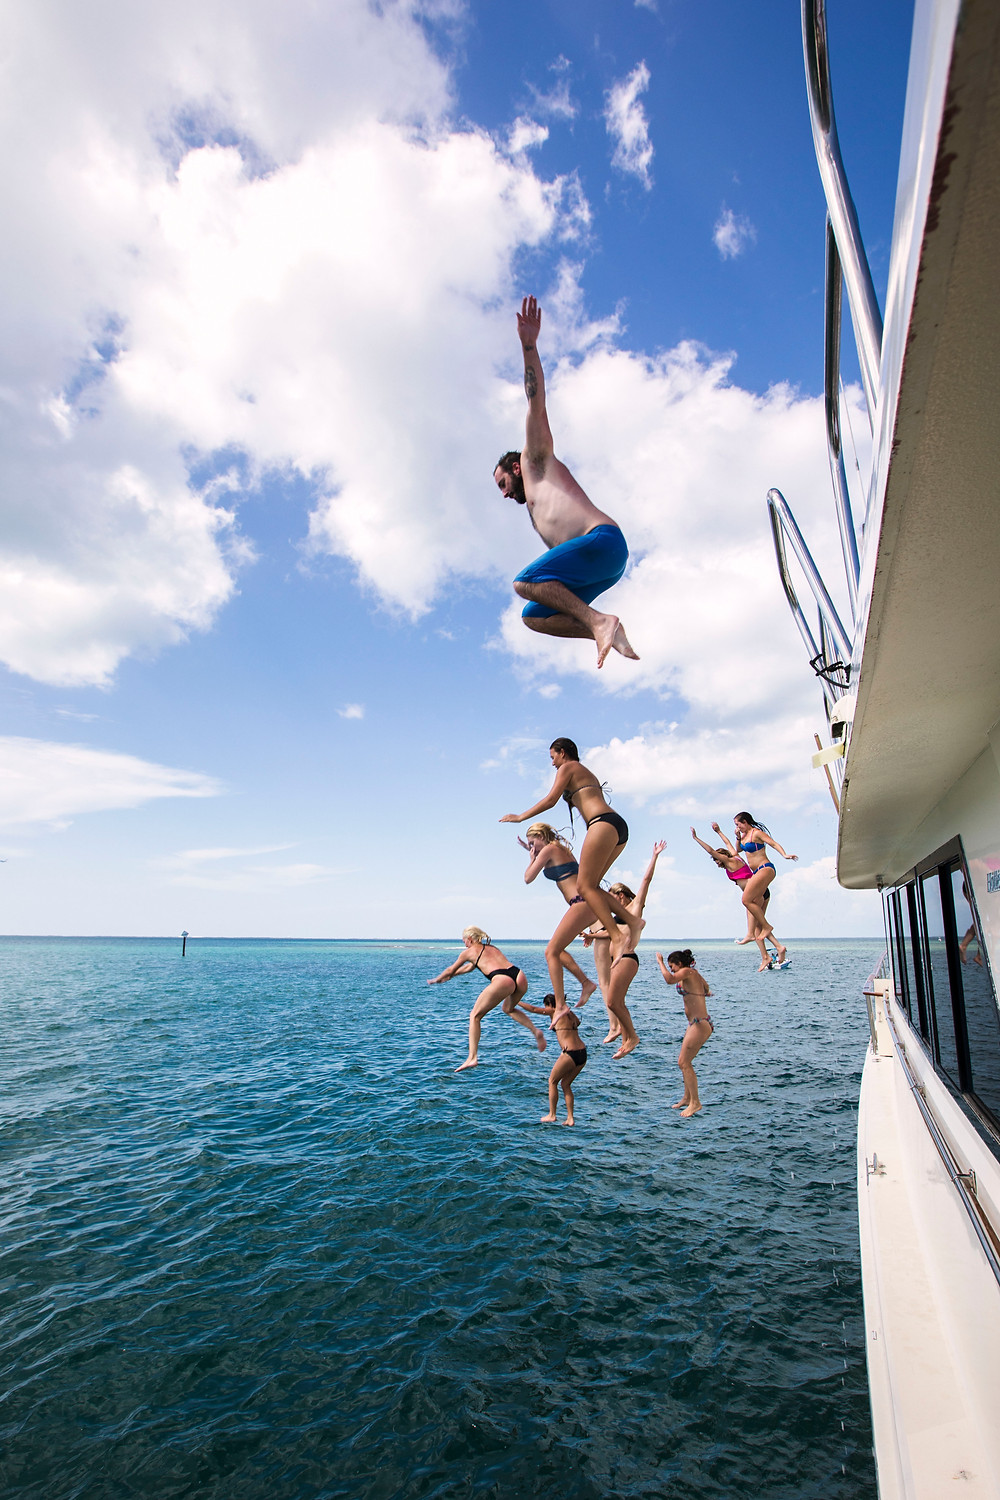 Bachelorette Party jumping off yacht